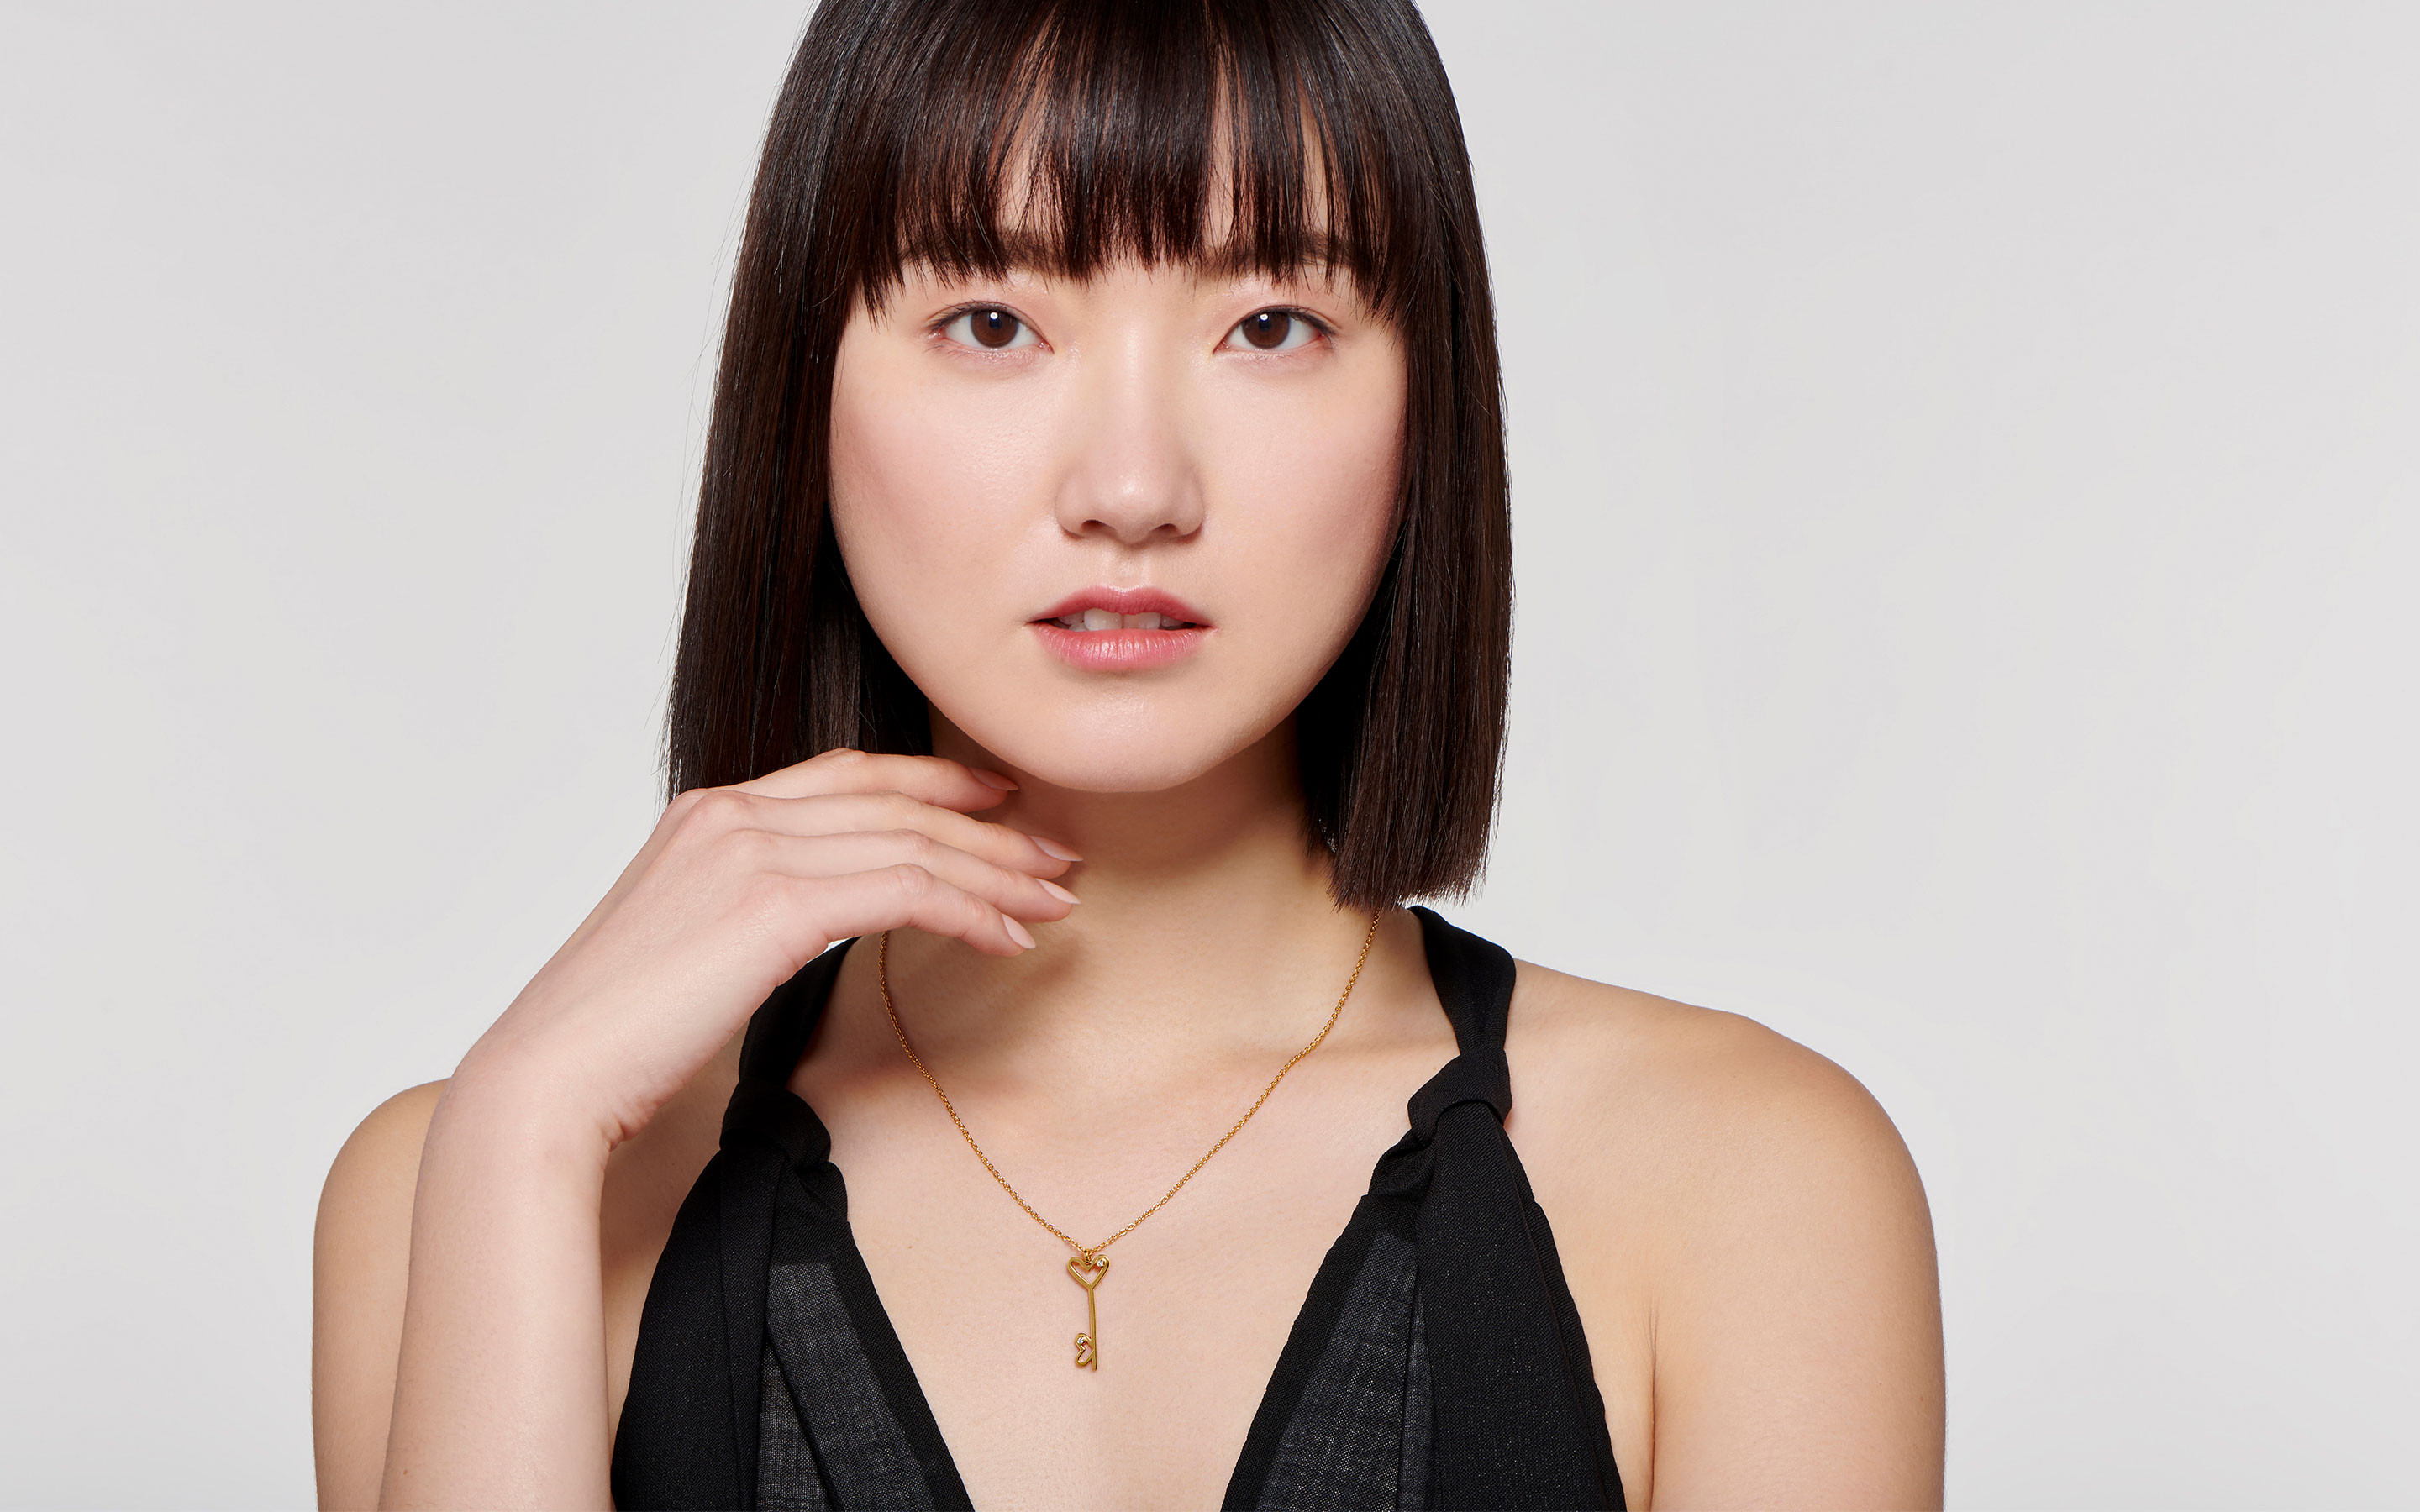 shining 22 karat gold necklace with double heart charm on gorgeous East Asian model